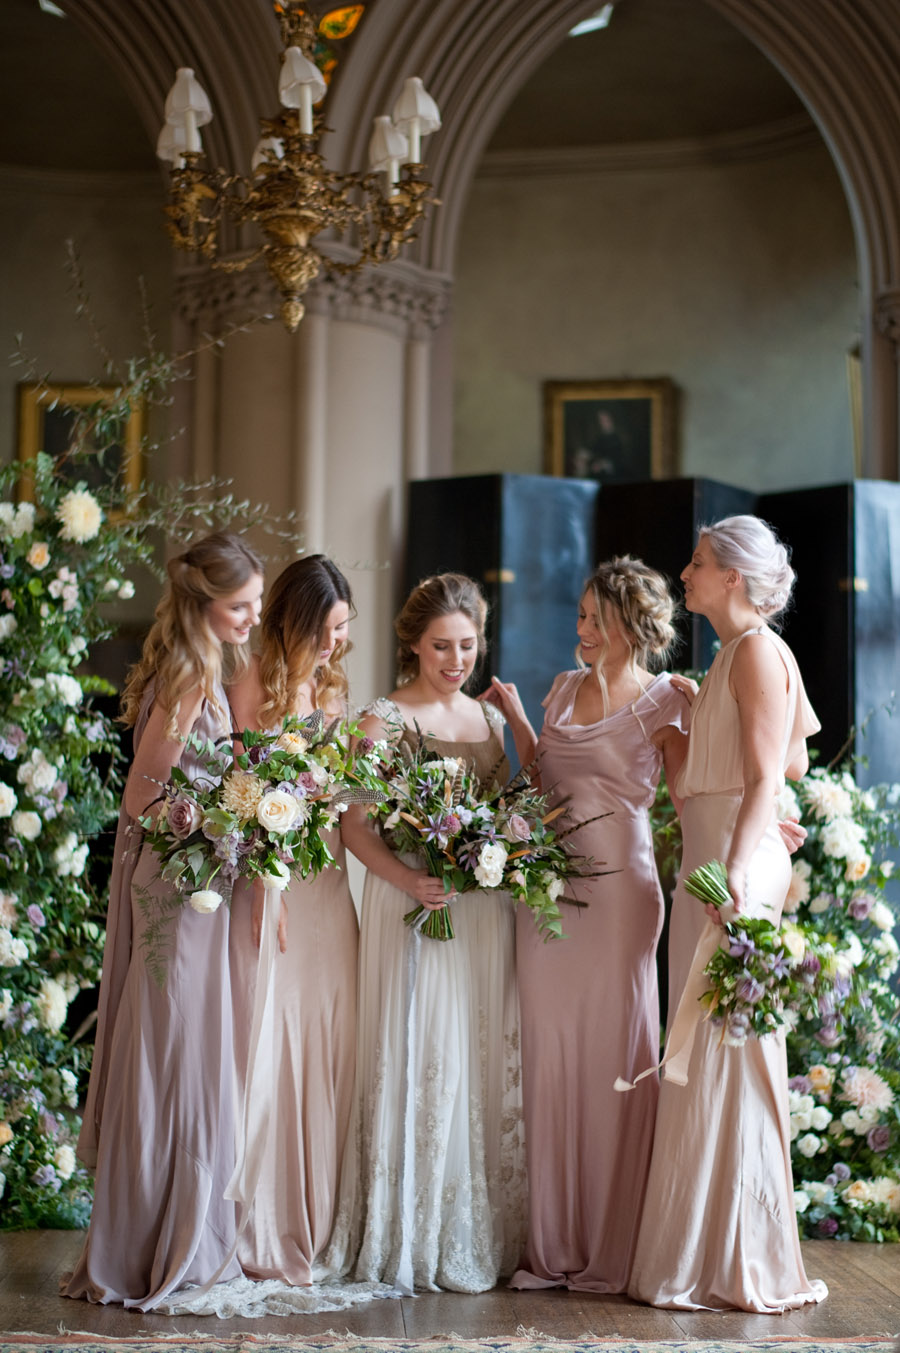 Luxe, modern wedding style ideas by Natalie Hewitt, image credit Rachael Connerton Photography (1)